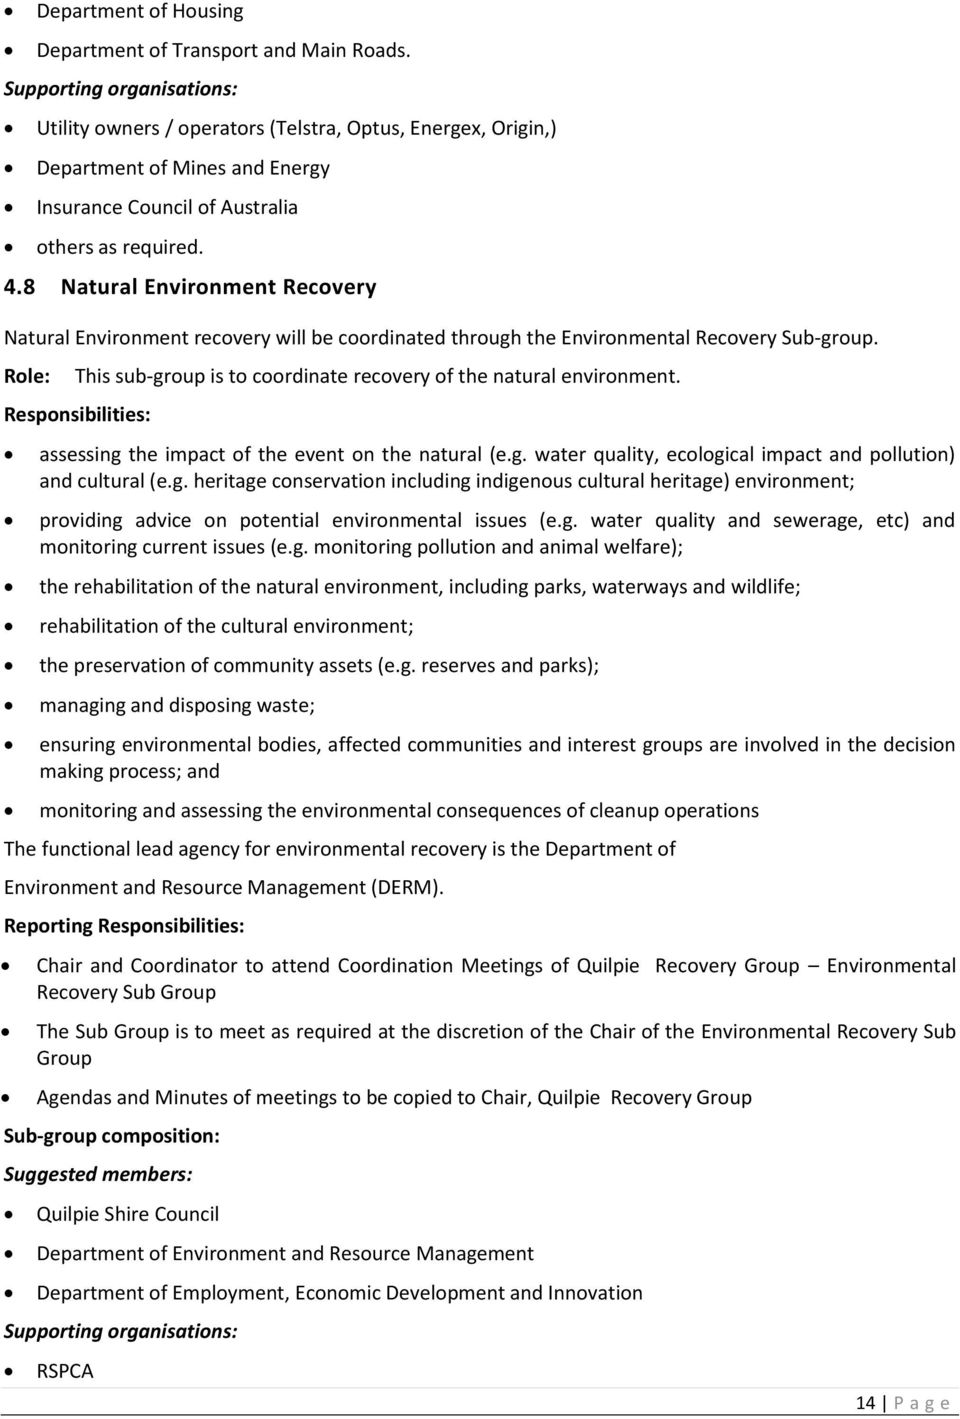 8 Natural Environment Recovery Natural Environment recovery will be coordinated through the Environmental Recovery Sub-group. Role: This sub-group is to coordinate recovery of the natural environment.